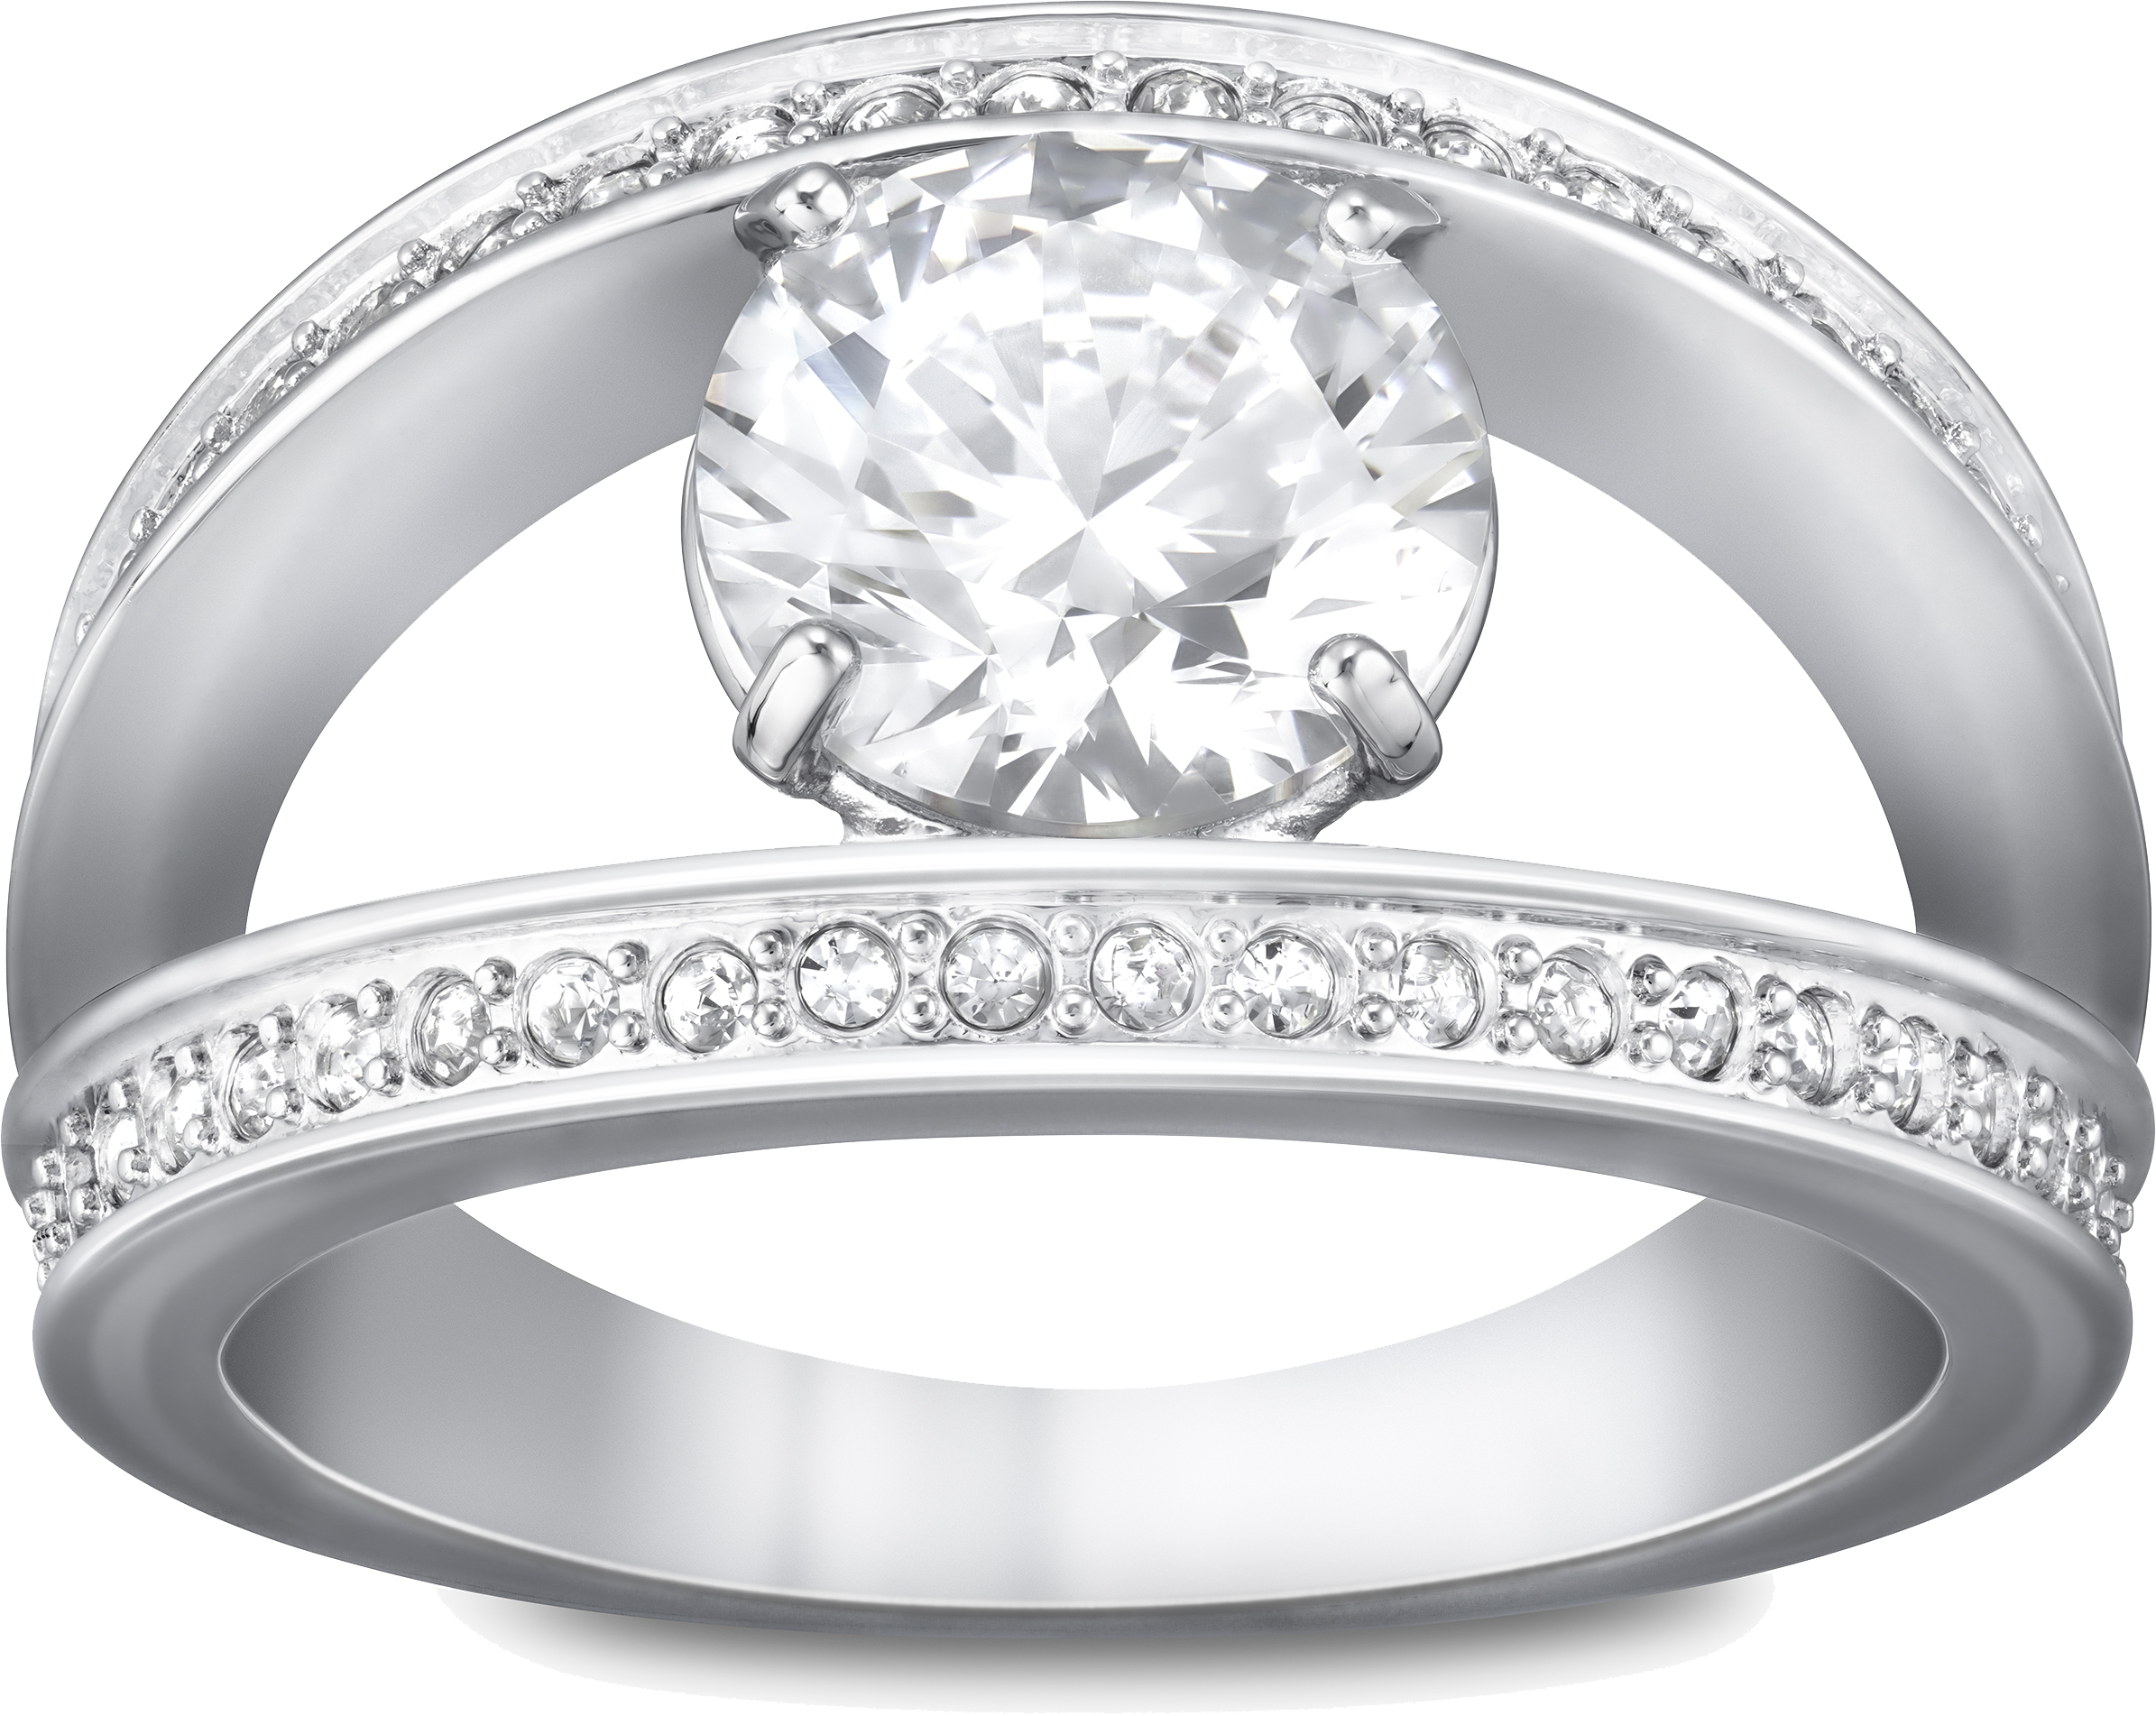 Silver Jewelry Png Image Purepng Free Transparent Cc0 Png Image